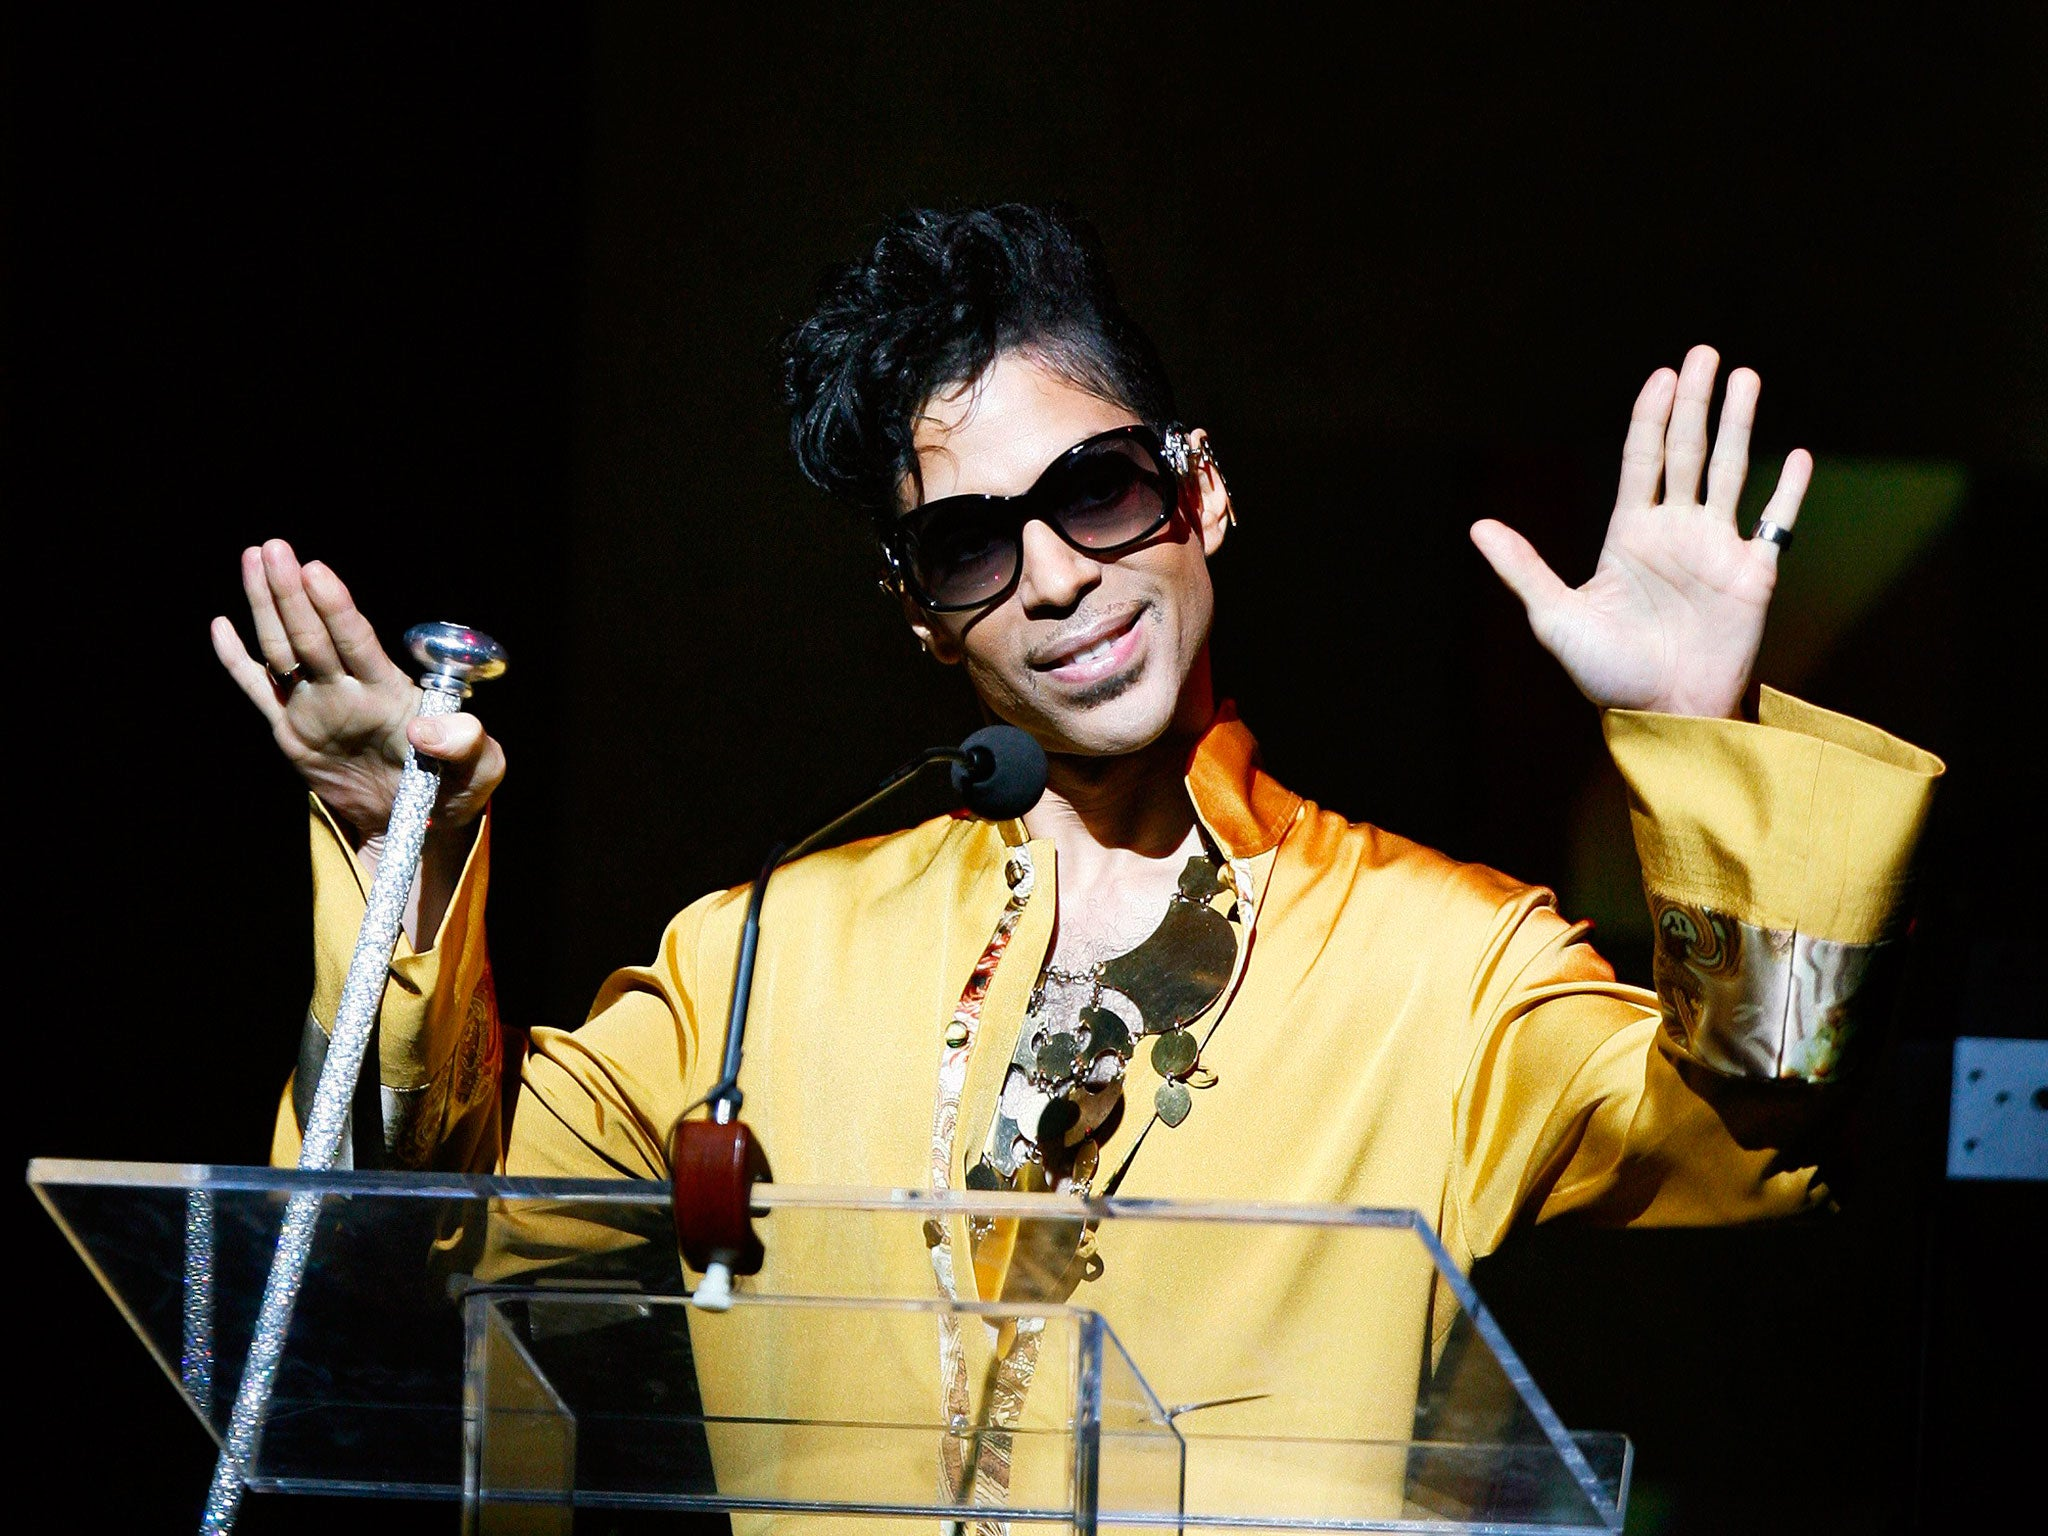 Prince Dead How To Listen To The Singers Music As He Wanted Not On Spotify Or Apple Music